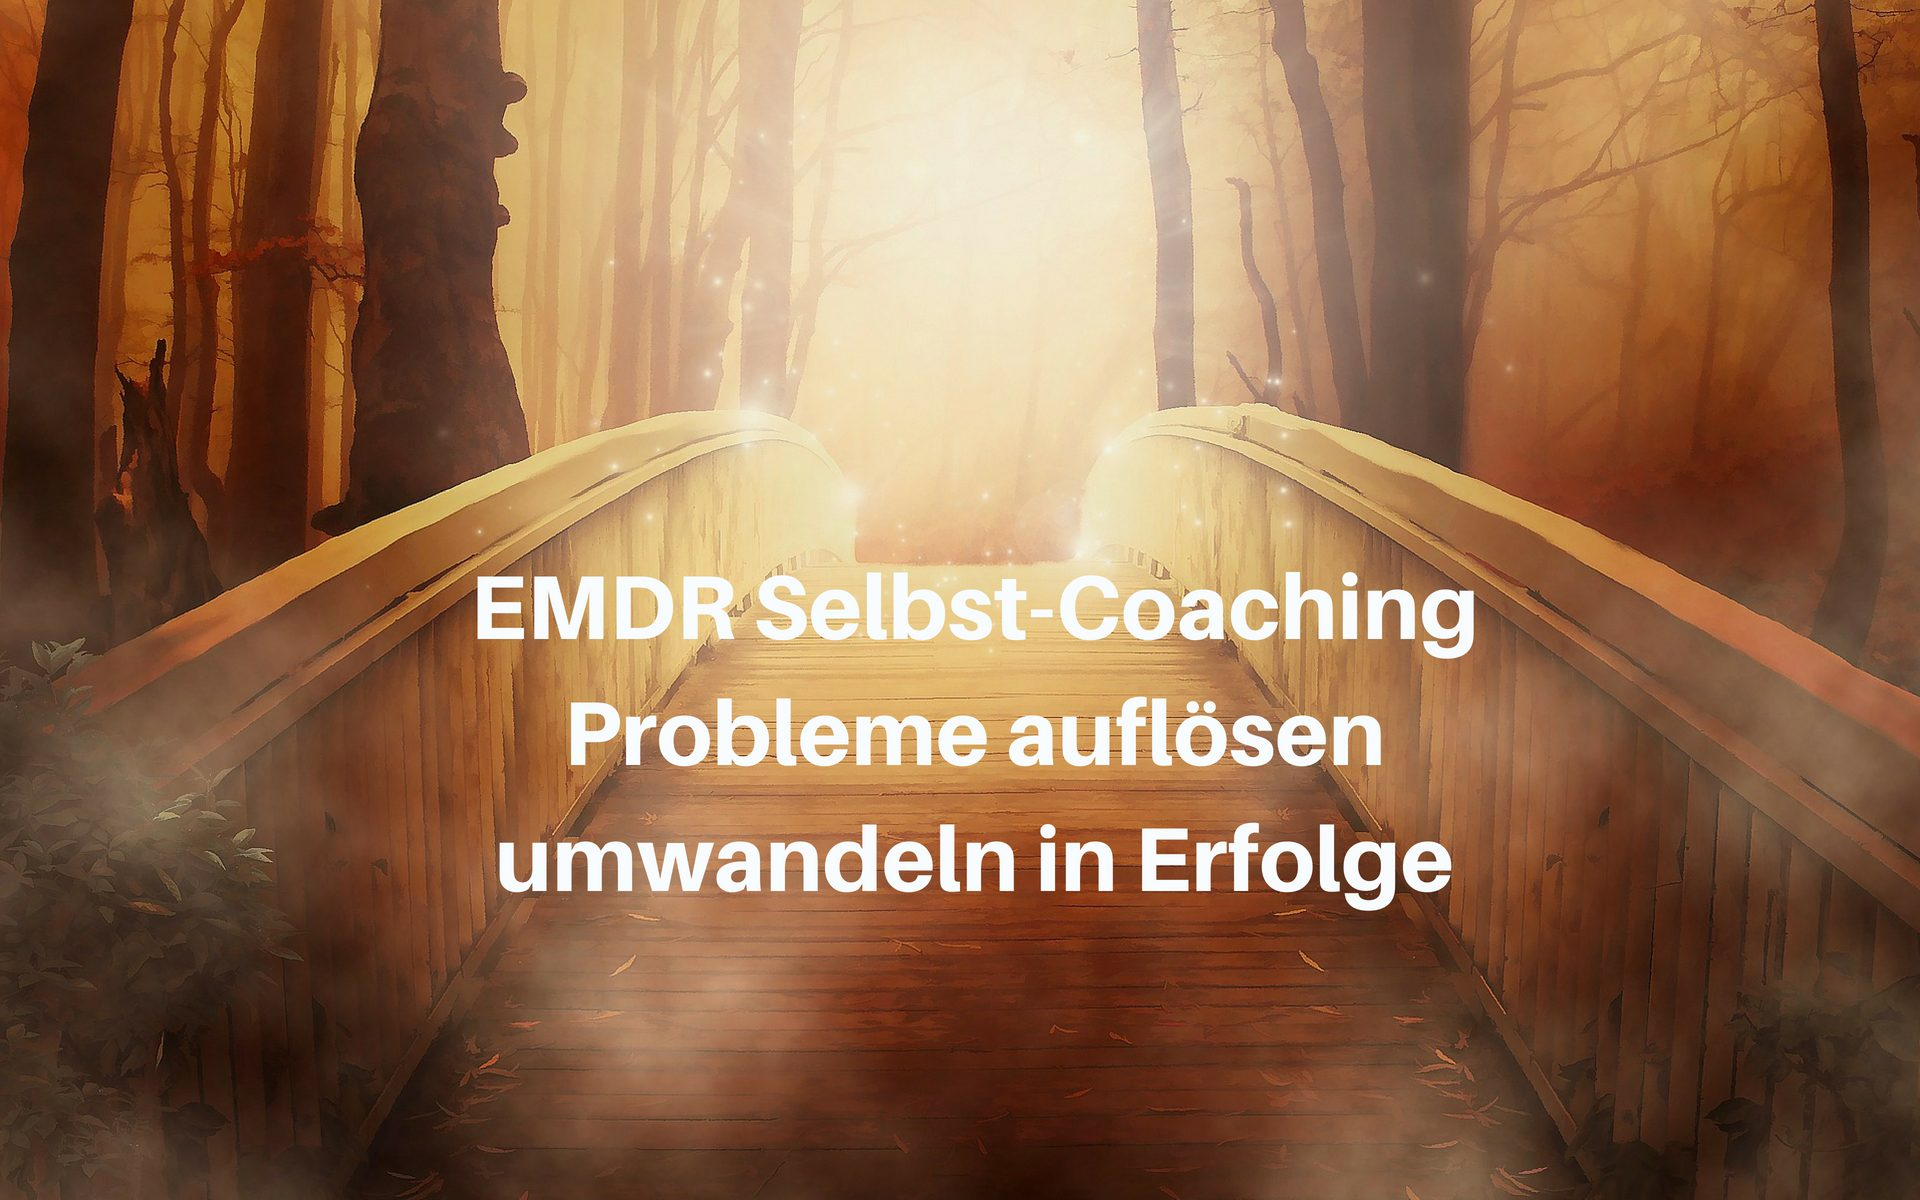 EMDR Selbstcoaching